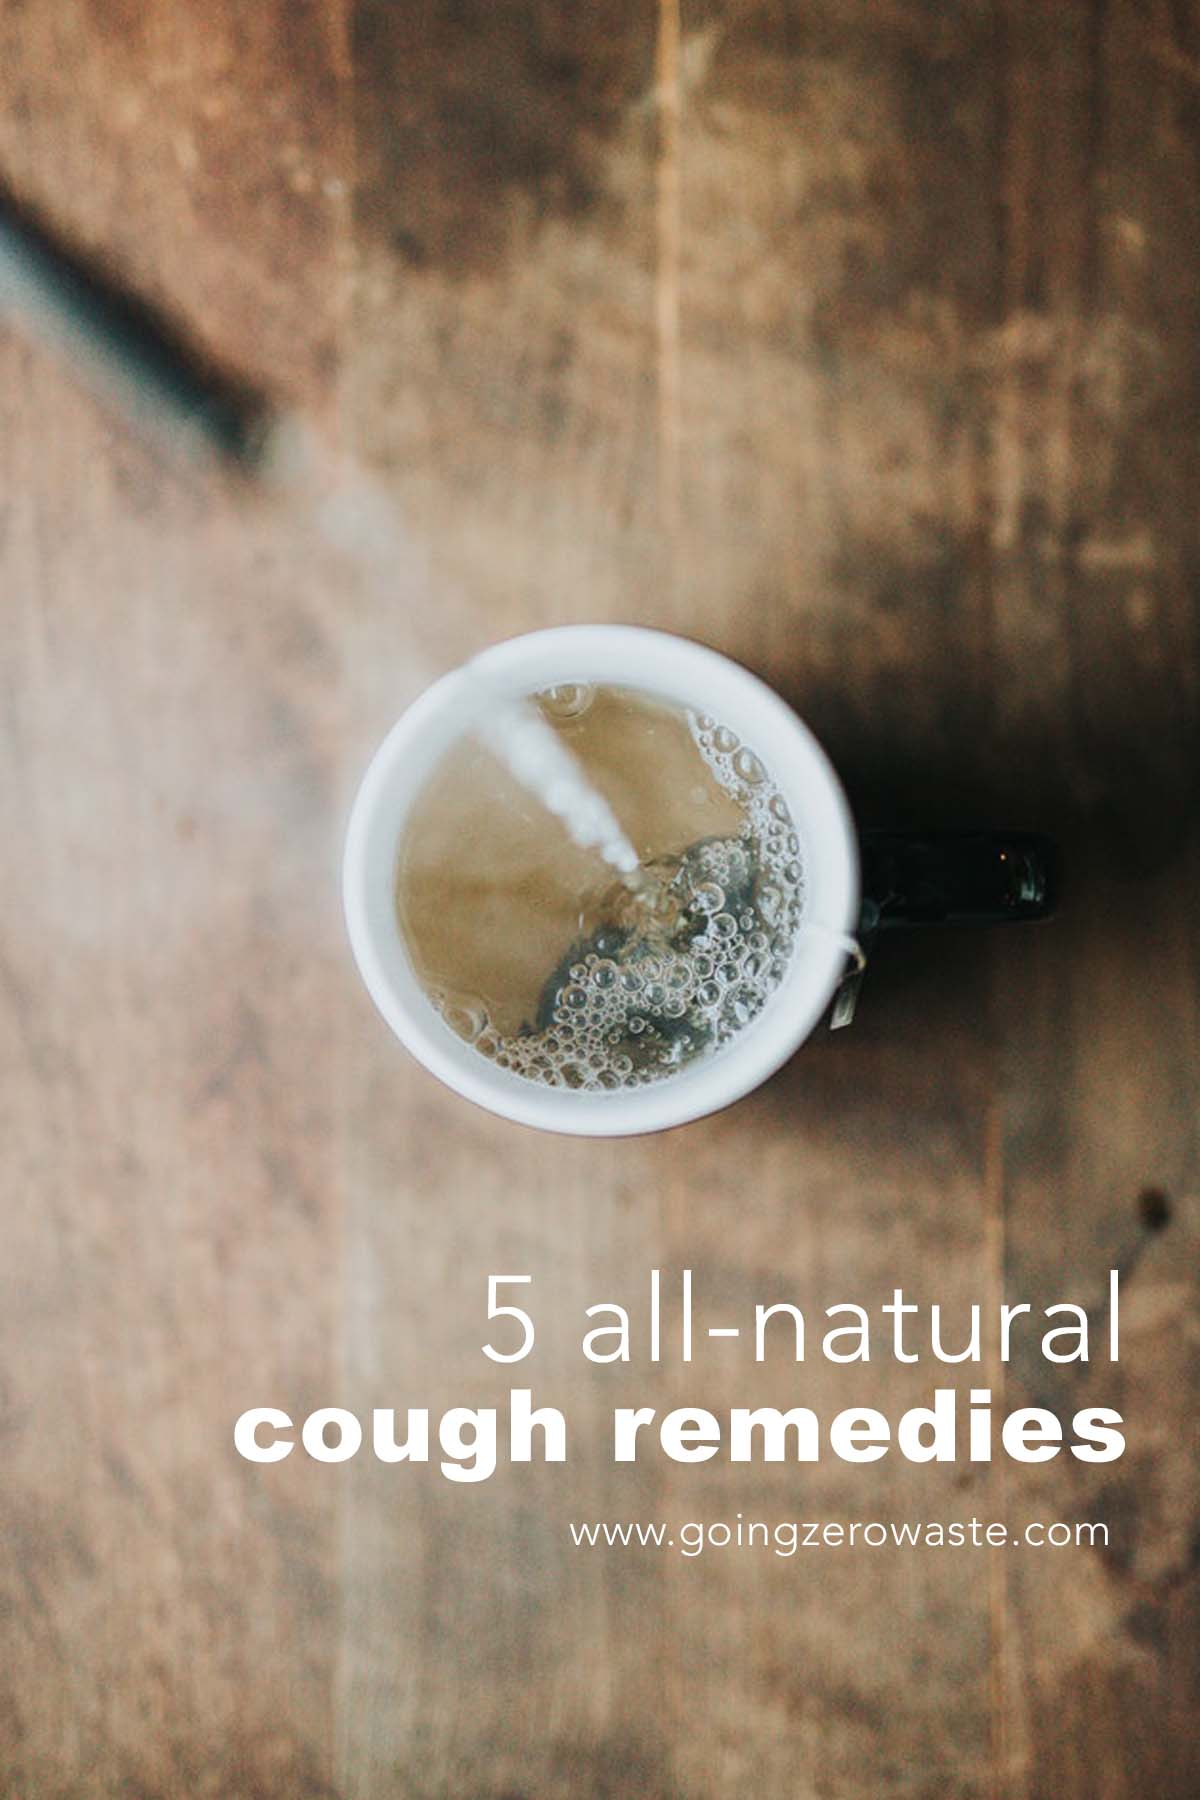 5 all-natural cough remedies from www.goingzerowaste.com #cough #allnatural #remedies #wellness #allergies